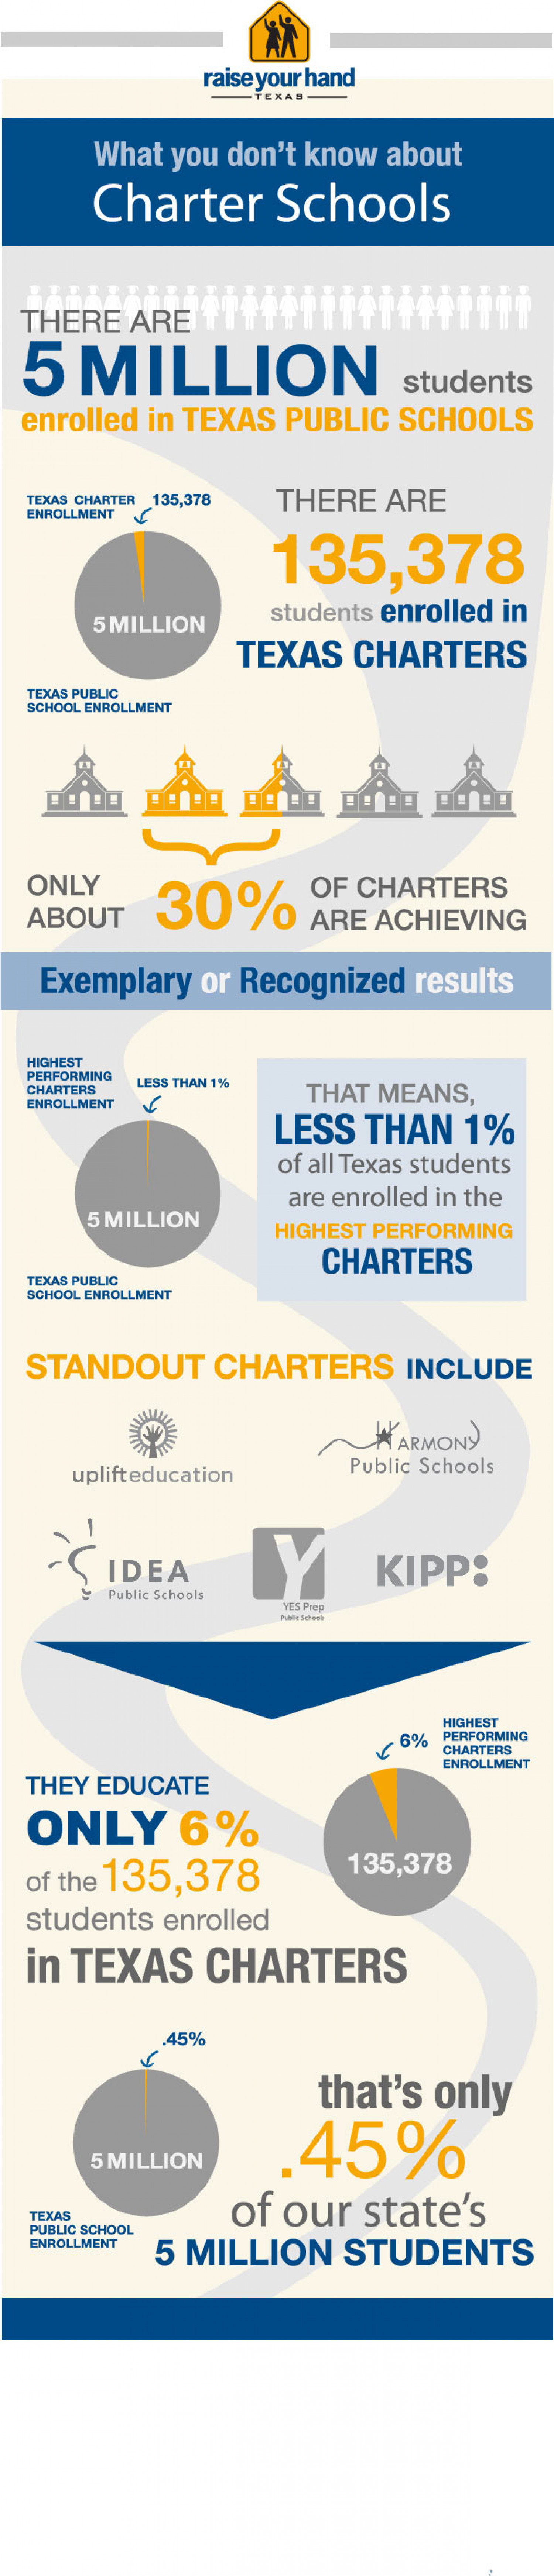 By The Numbers: A Look At What You Don't Know About Charter Schools Infographic